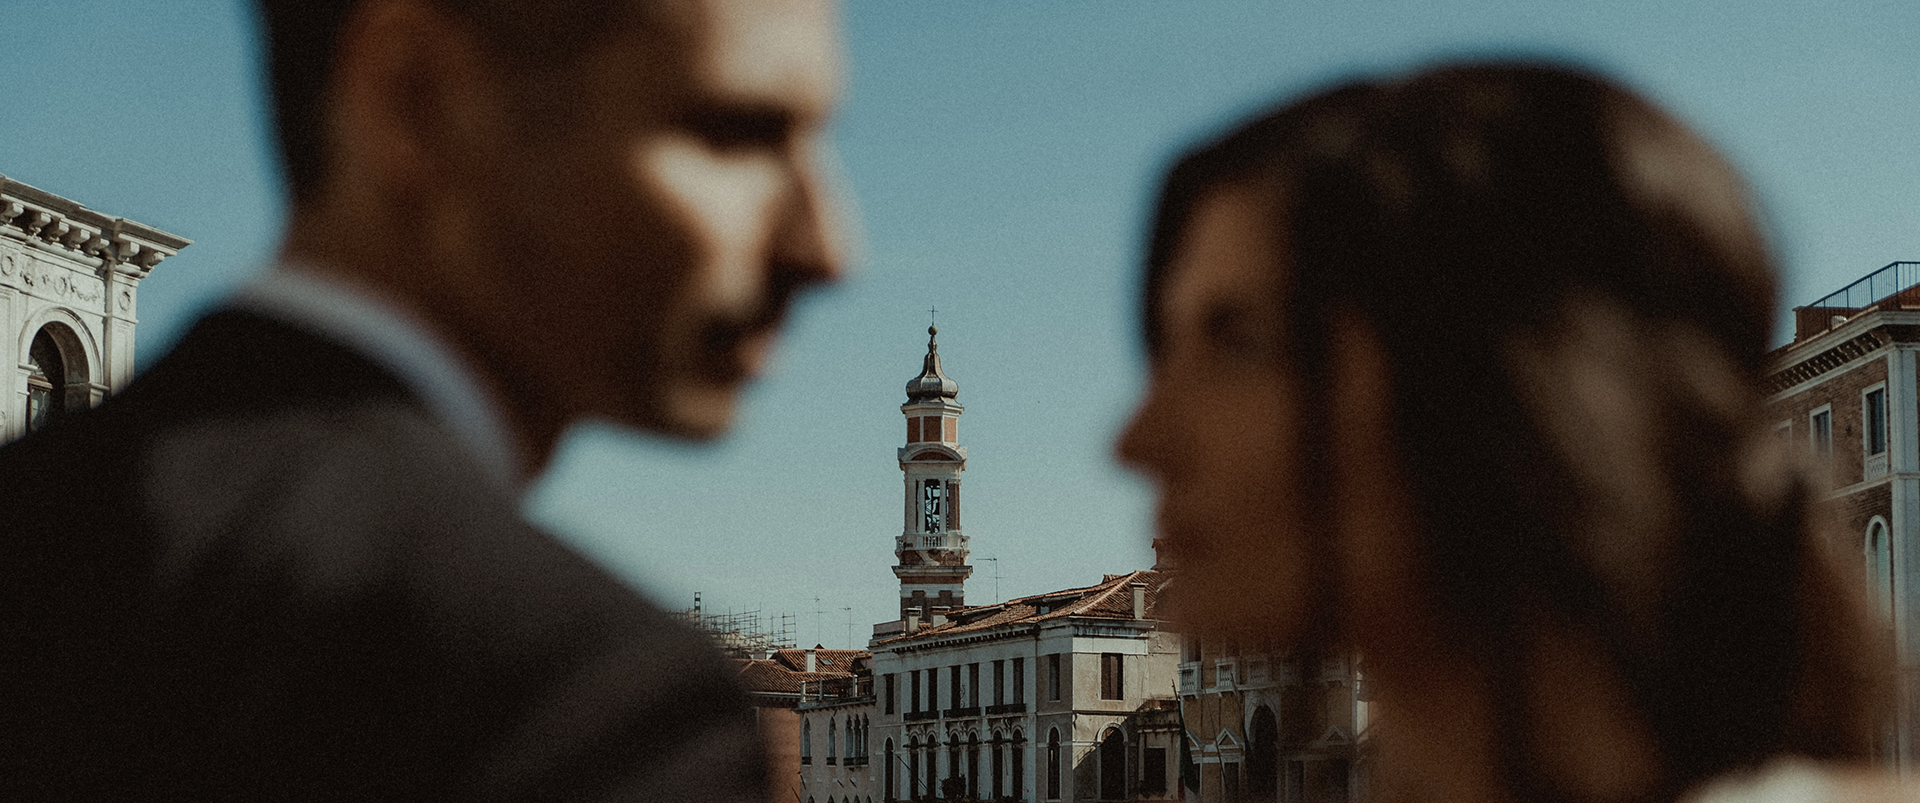 Mari + Eythymis | Metropolitan City of Venice, Italy | Hotel Carlton on the Gran Canal